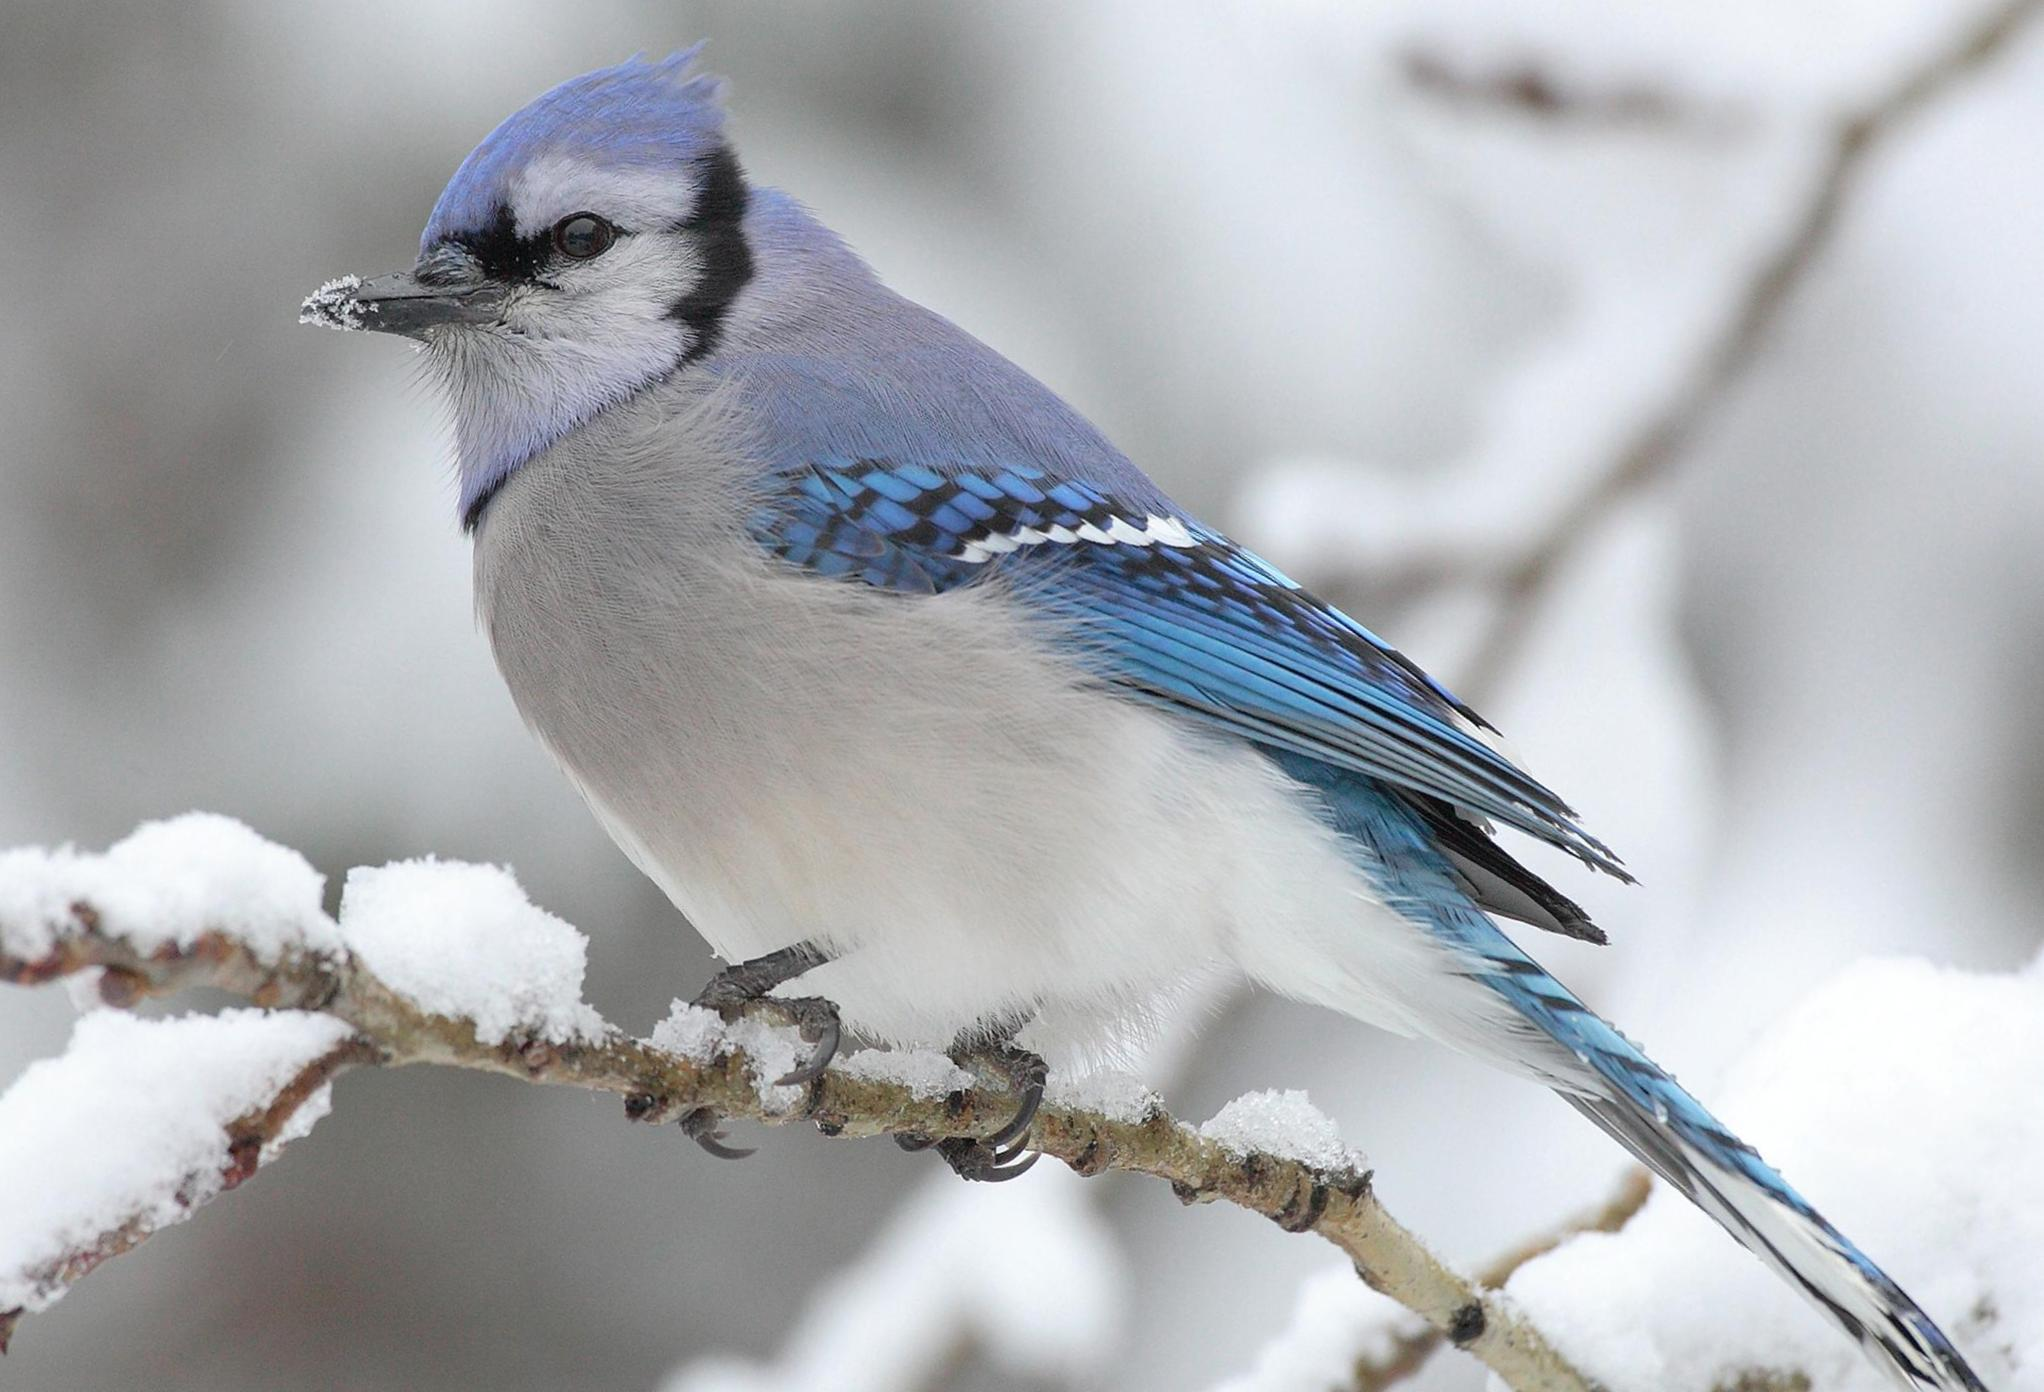 Which birds are wintering